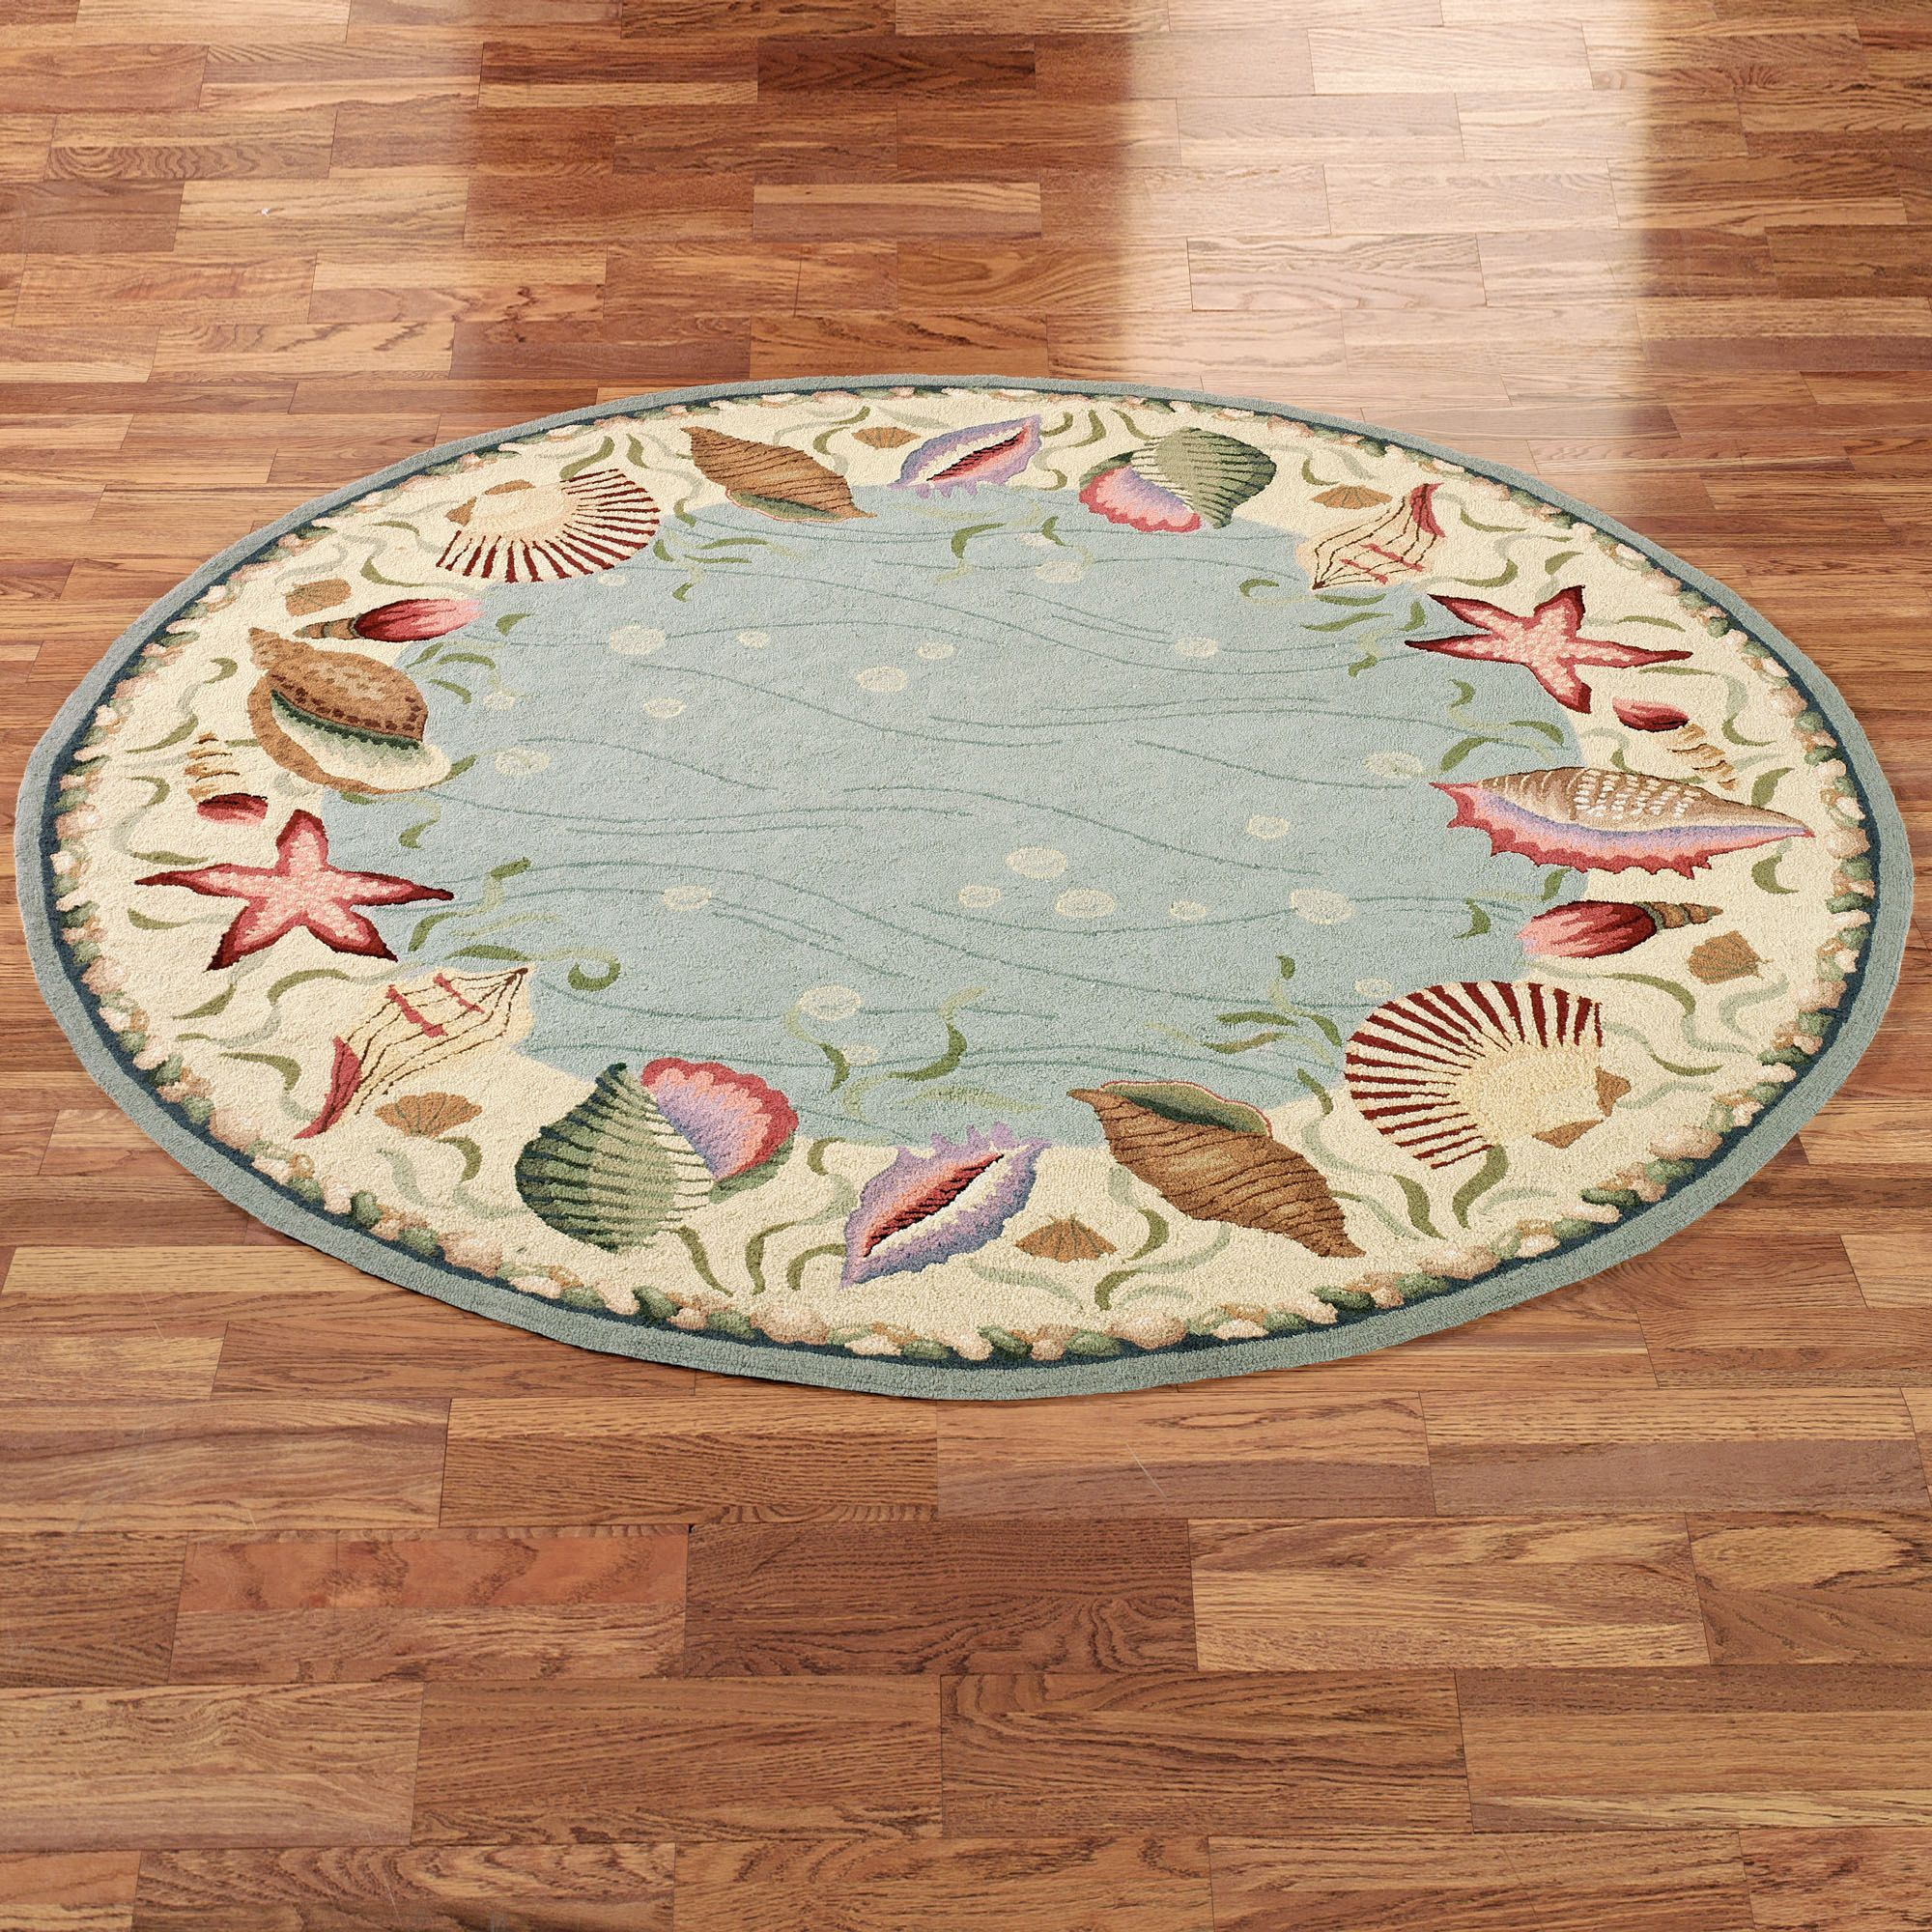 most ideas starfish peachy rugs rug compass indoor themed carpet coastal beach nautical delightful outdoor home fish area style tropical cottage design magnificent rose bathroom